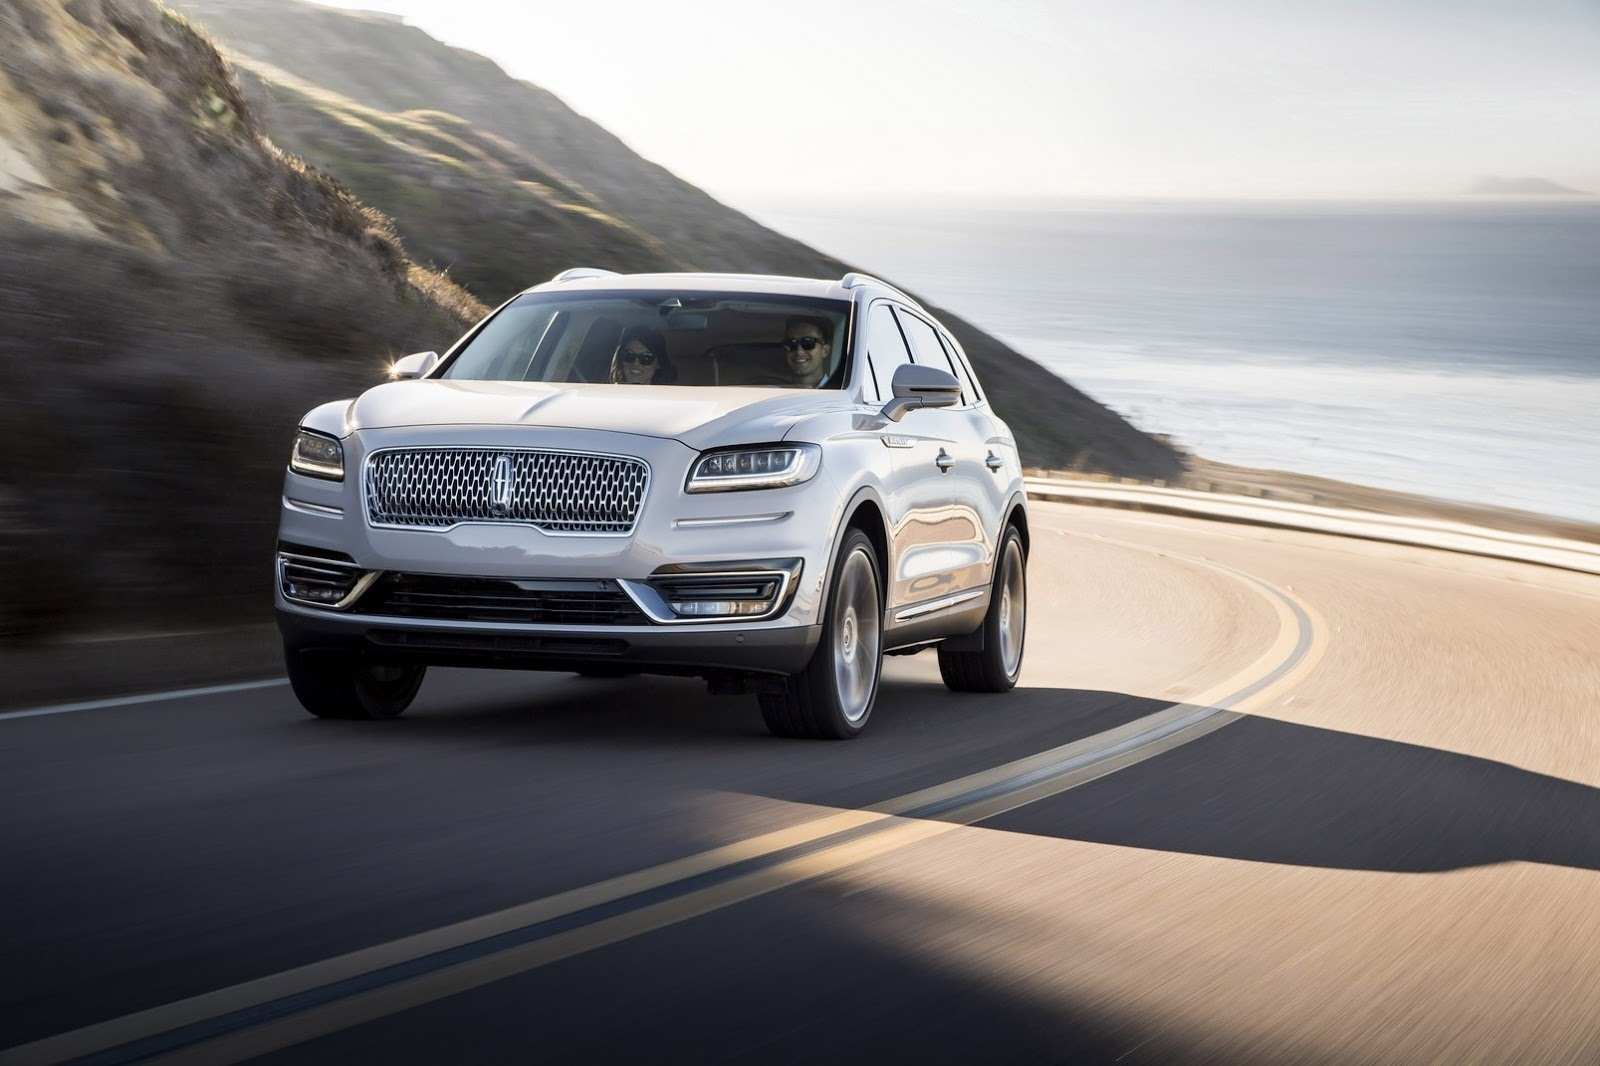 64 New 2020 Lincoln MKS Spy Photos Release Date And Concept